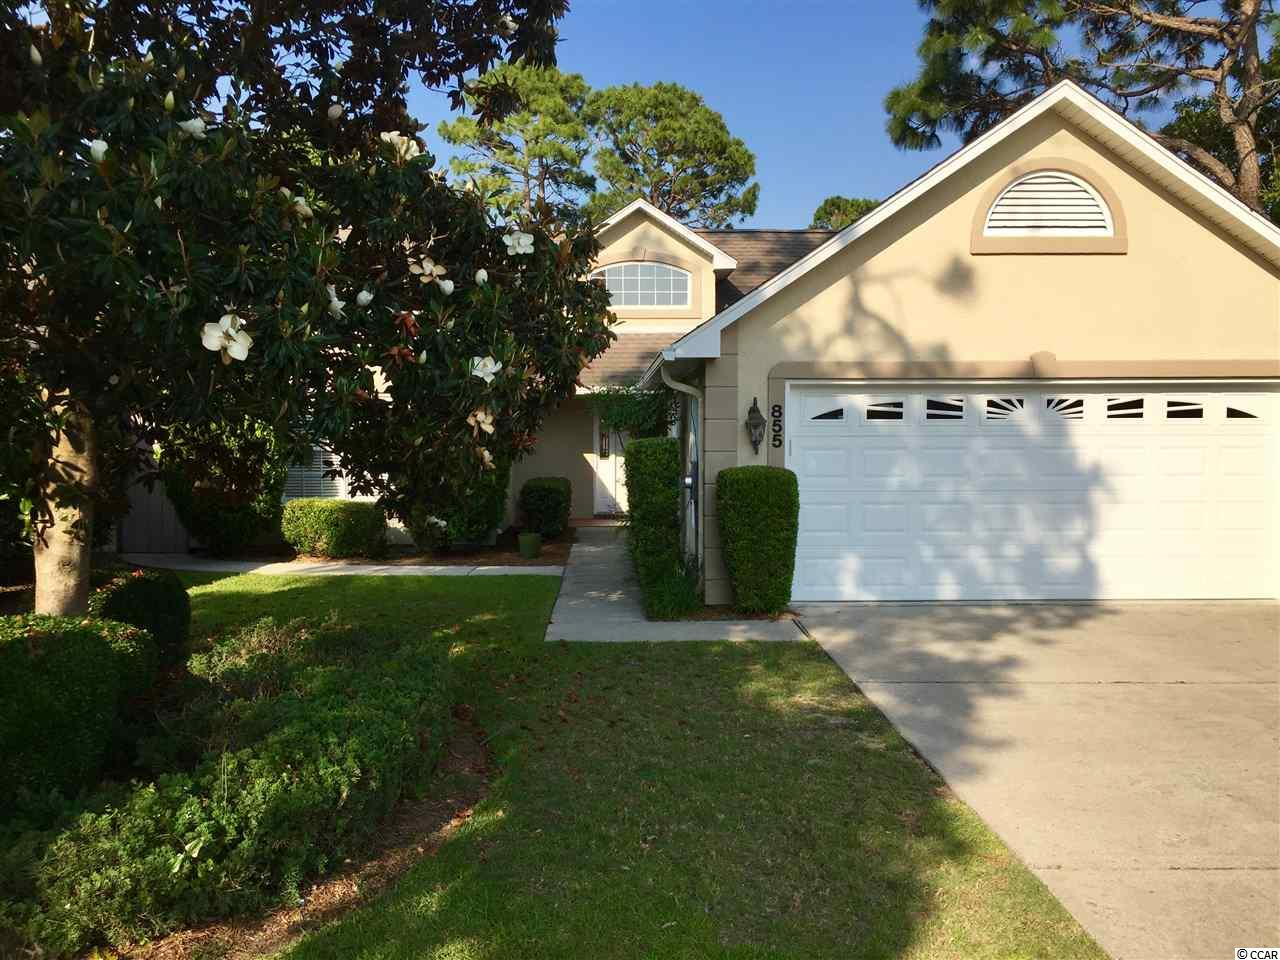 Location, Location, Located close to the beach, hospital, doctors office, restaurants, bank, grocery and more. Within walking distance or use your golf cart to ocean. This house has been  remodeled FROM STUDS out, it is move in ready.   Granite counter tops ,Master bath, has all new fixtures with an all tiled walk in shower,  new cabinets, with granite counter top. Second bath is totally new. Tiles floors in all bedrooms, Baths and kitchen You have a  patio out back with a lovely yard.   Had office that can be use for 3rd Bedroom.  There is more to see that isn't mentioned.